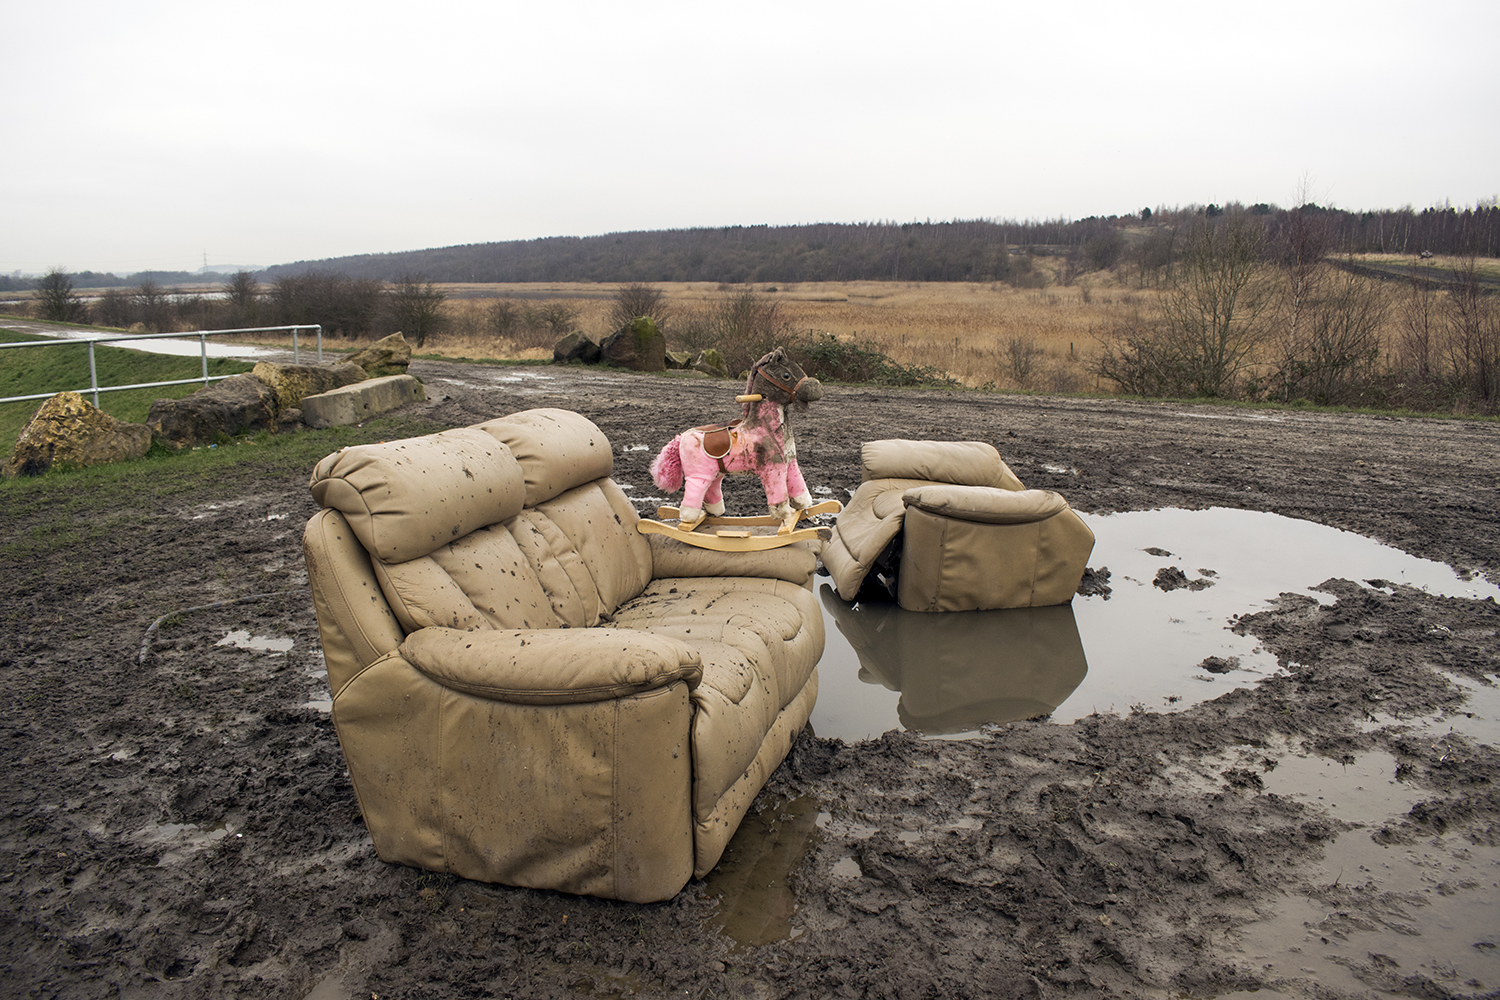 An image of a fly-tipping incident